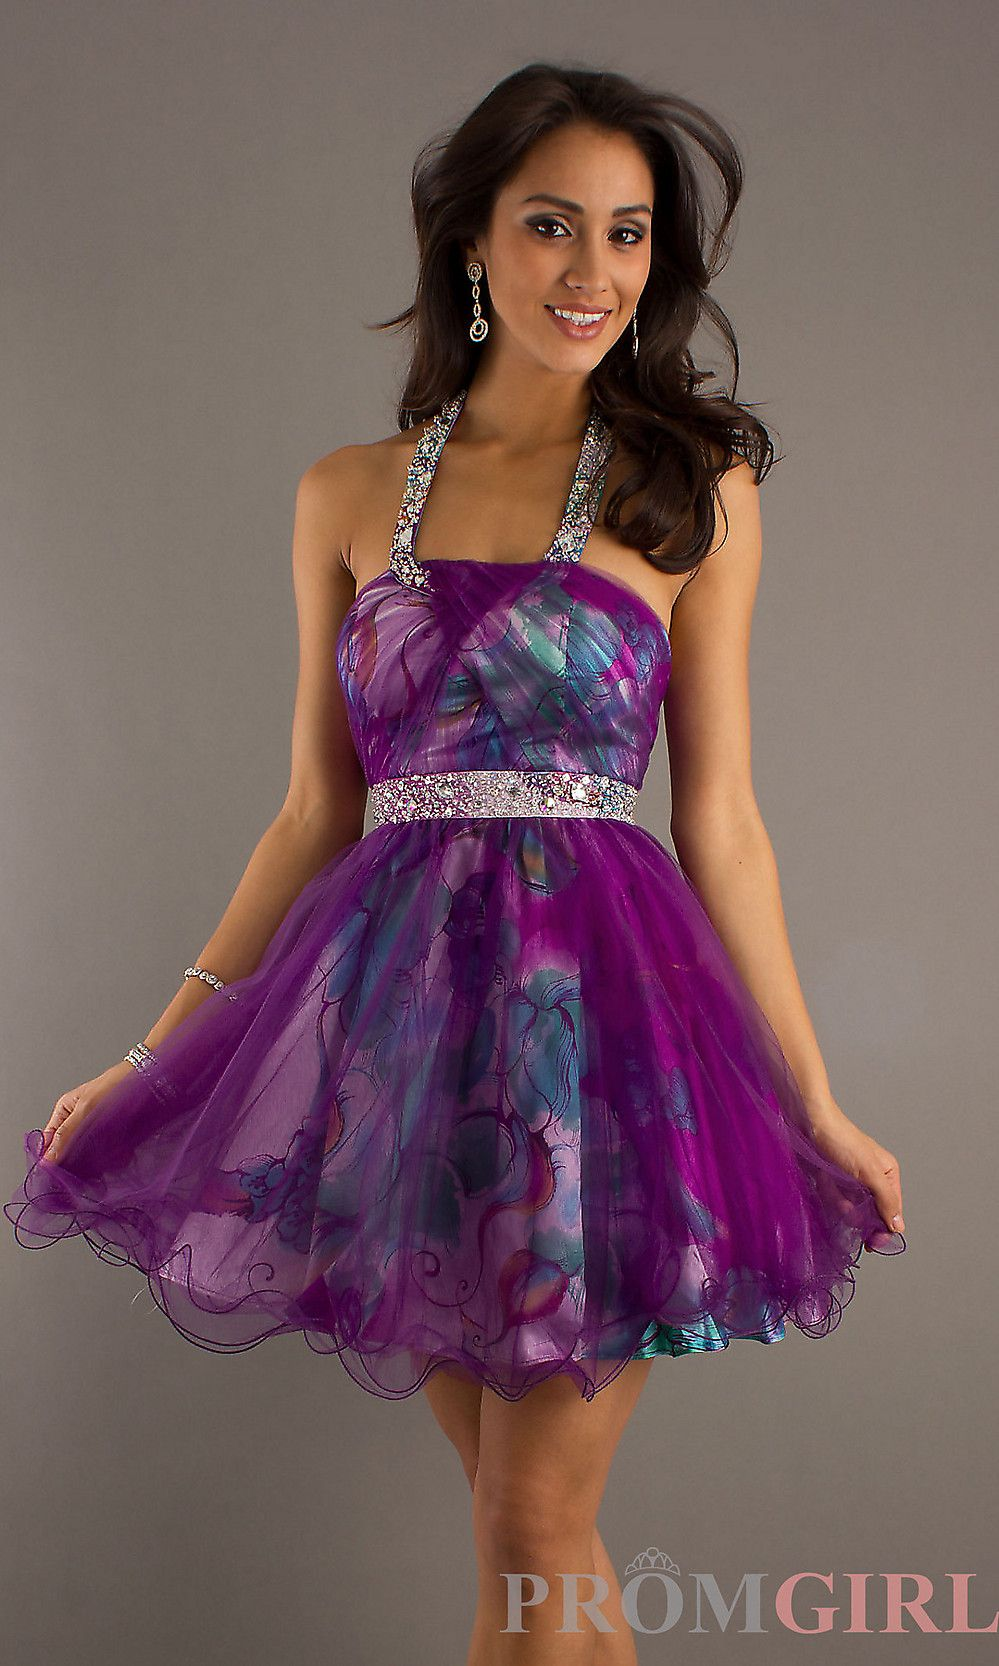 Frontview prom dress ideas pinterest dress ideas prom and